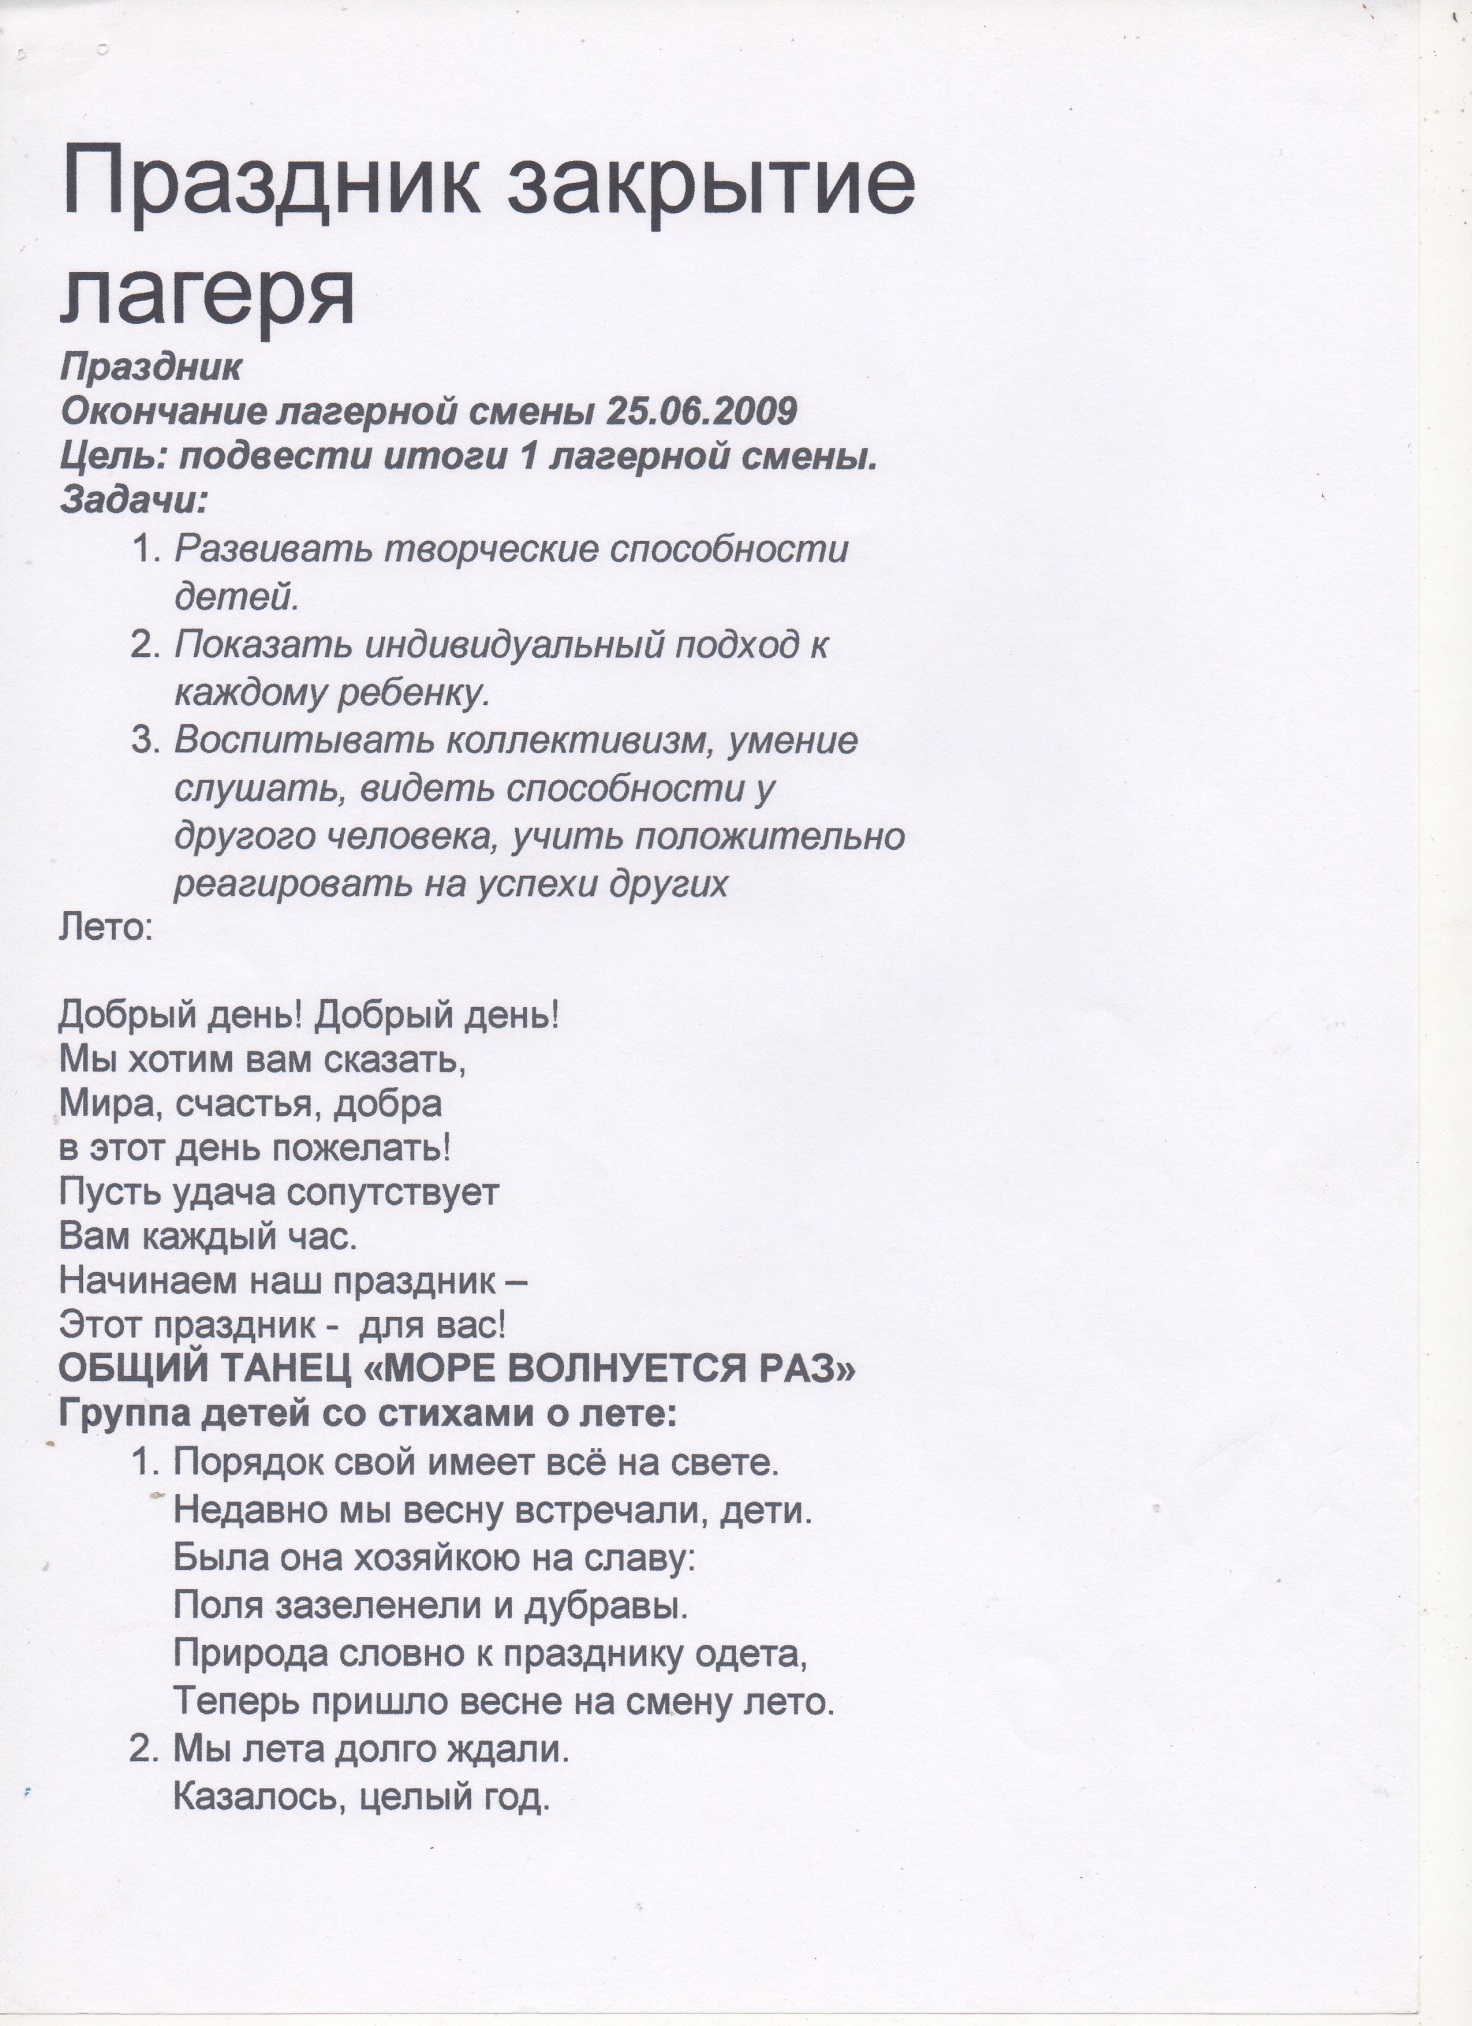 C:\Users\user\Pictures\скан\1.jpg